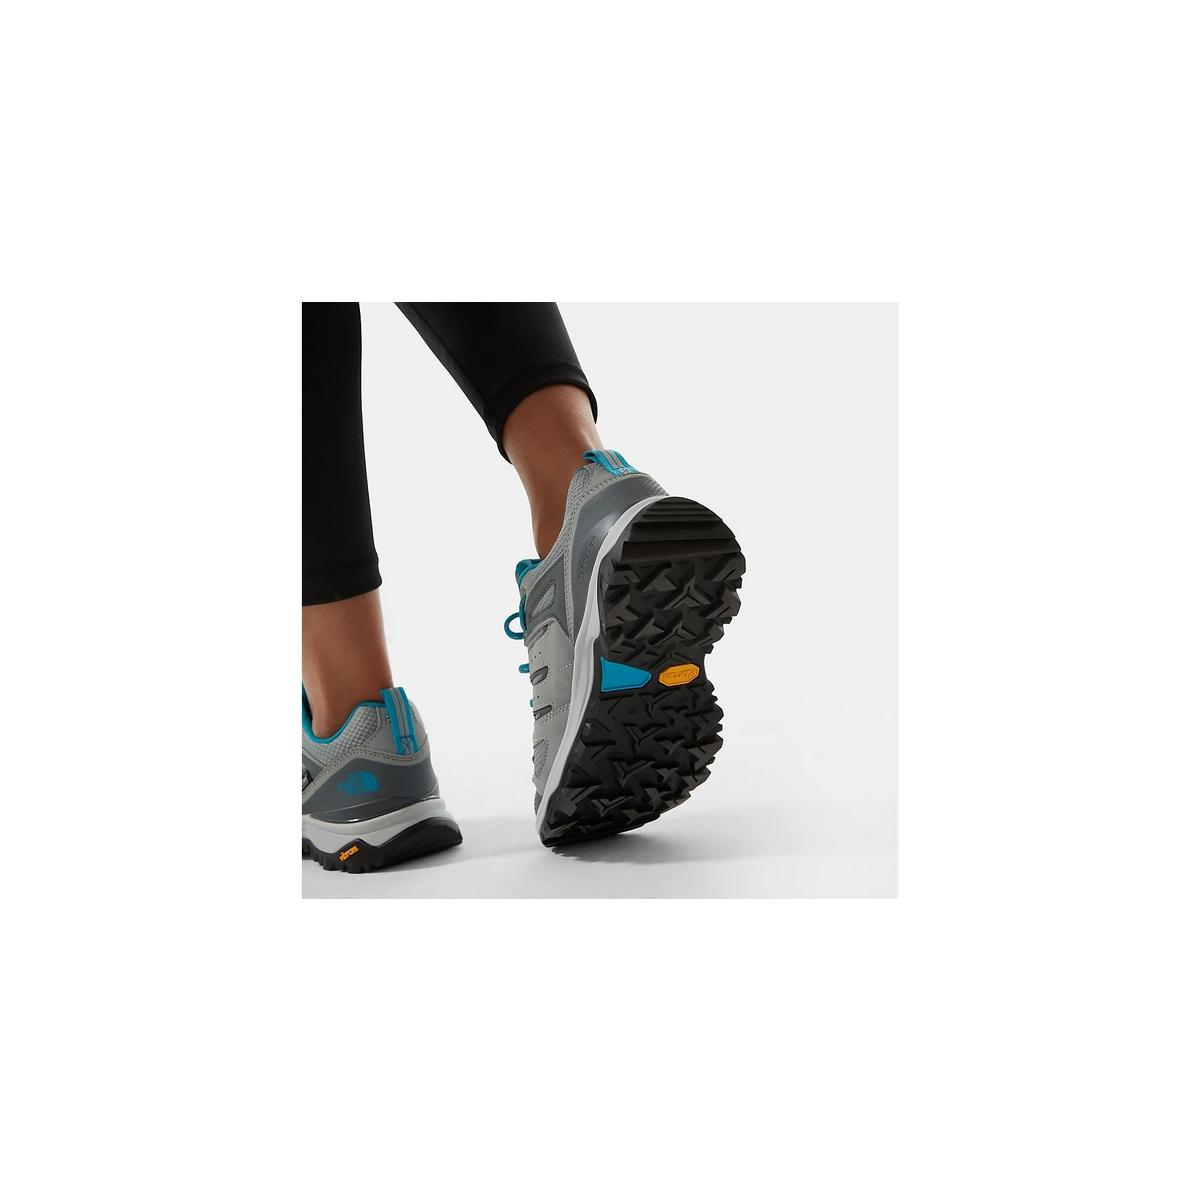 The North Face Women's Hedgehog Fastpack II WP